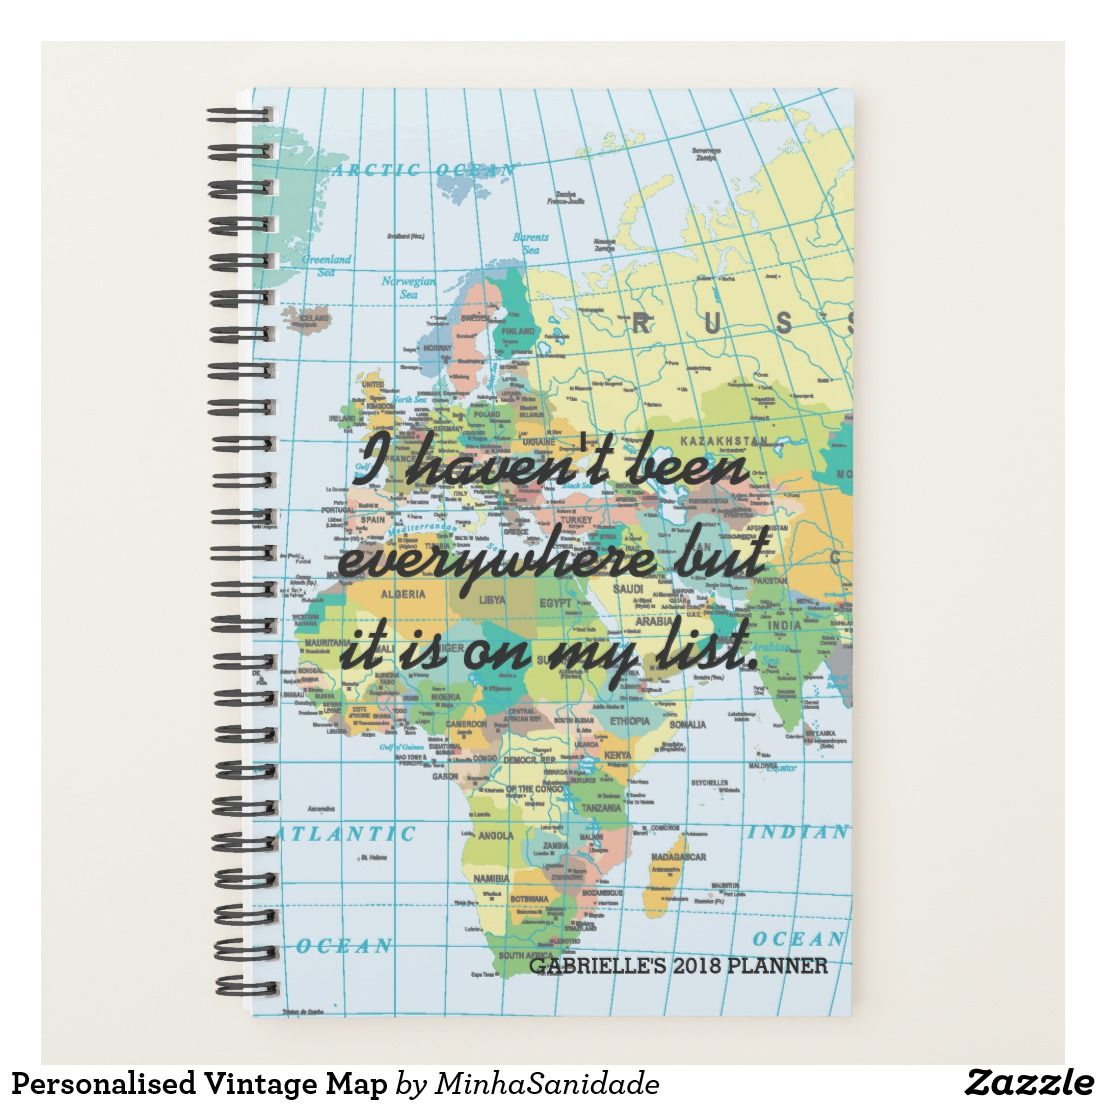 Customise this super cool planner with your own travel wisdom words customise this super cool planner with your own travel wisdom words the background of a vintage style world map makes it a just perfect gift for travellers gumiabroncs Image collections